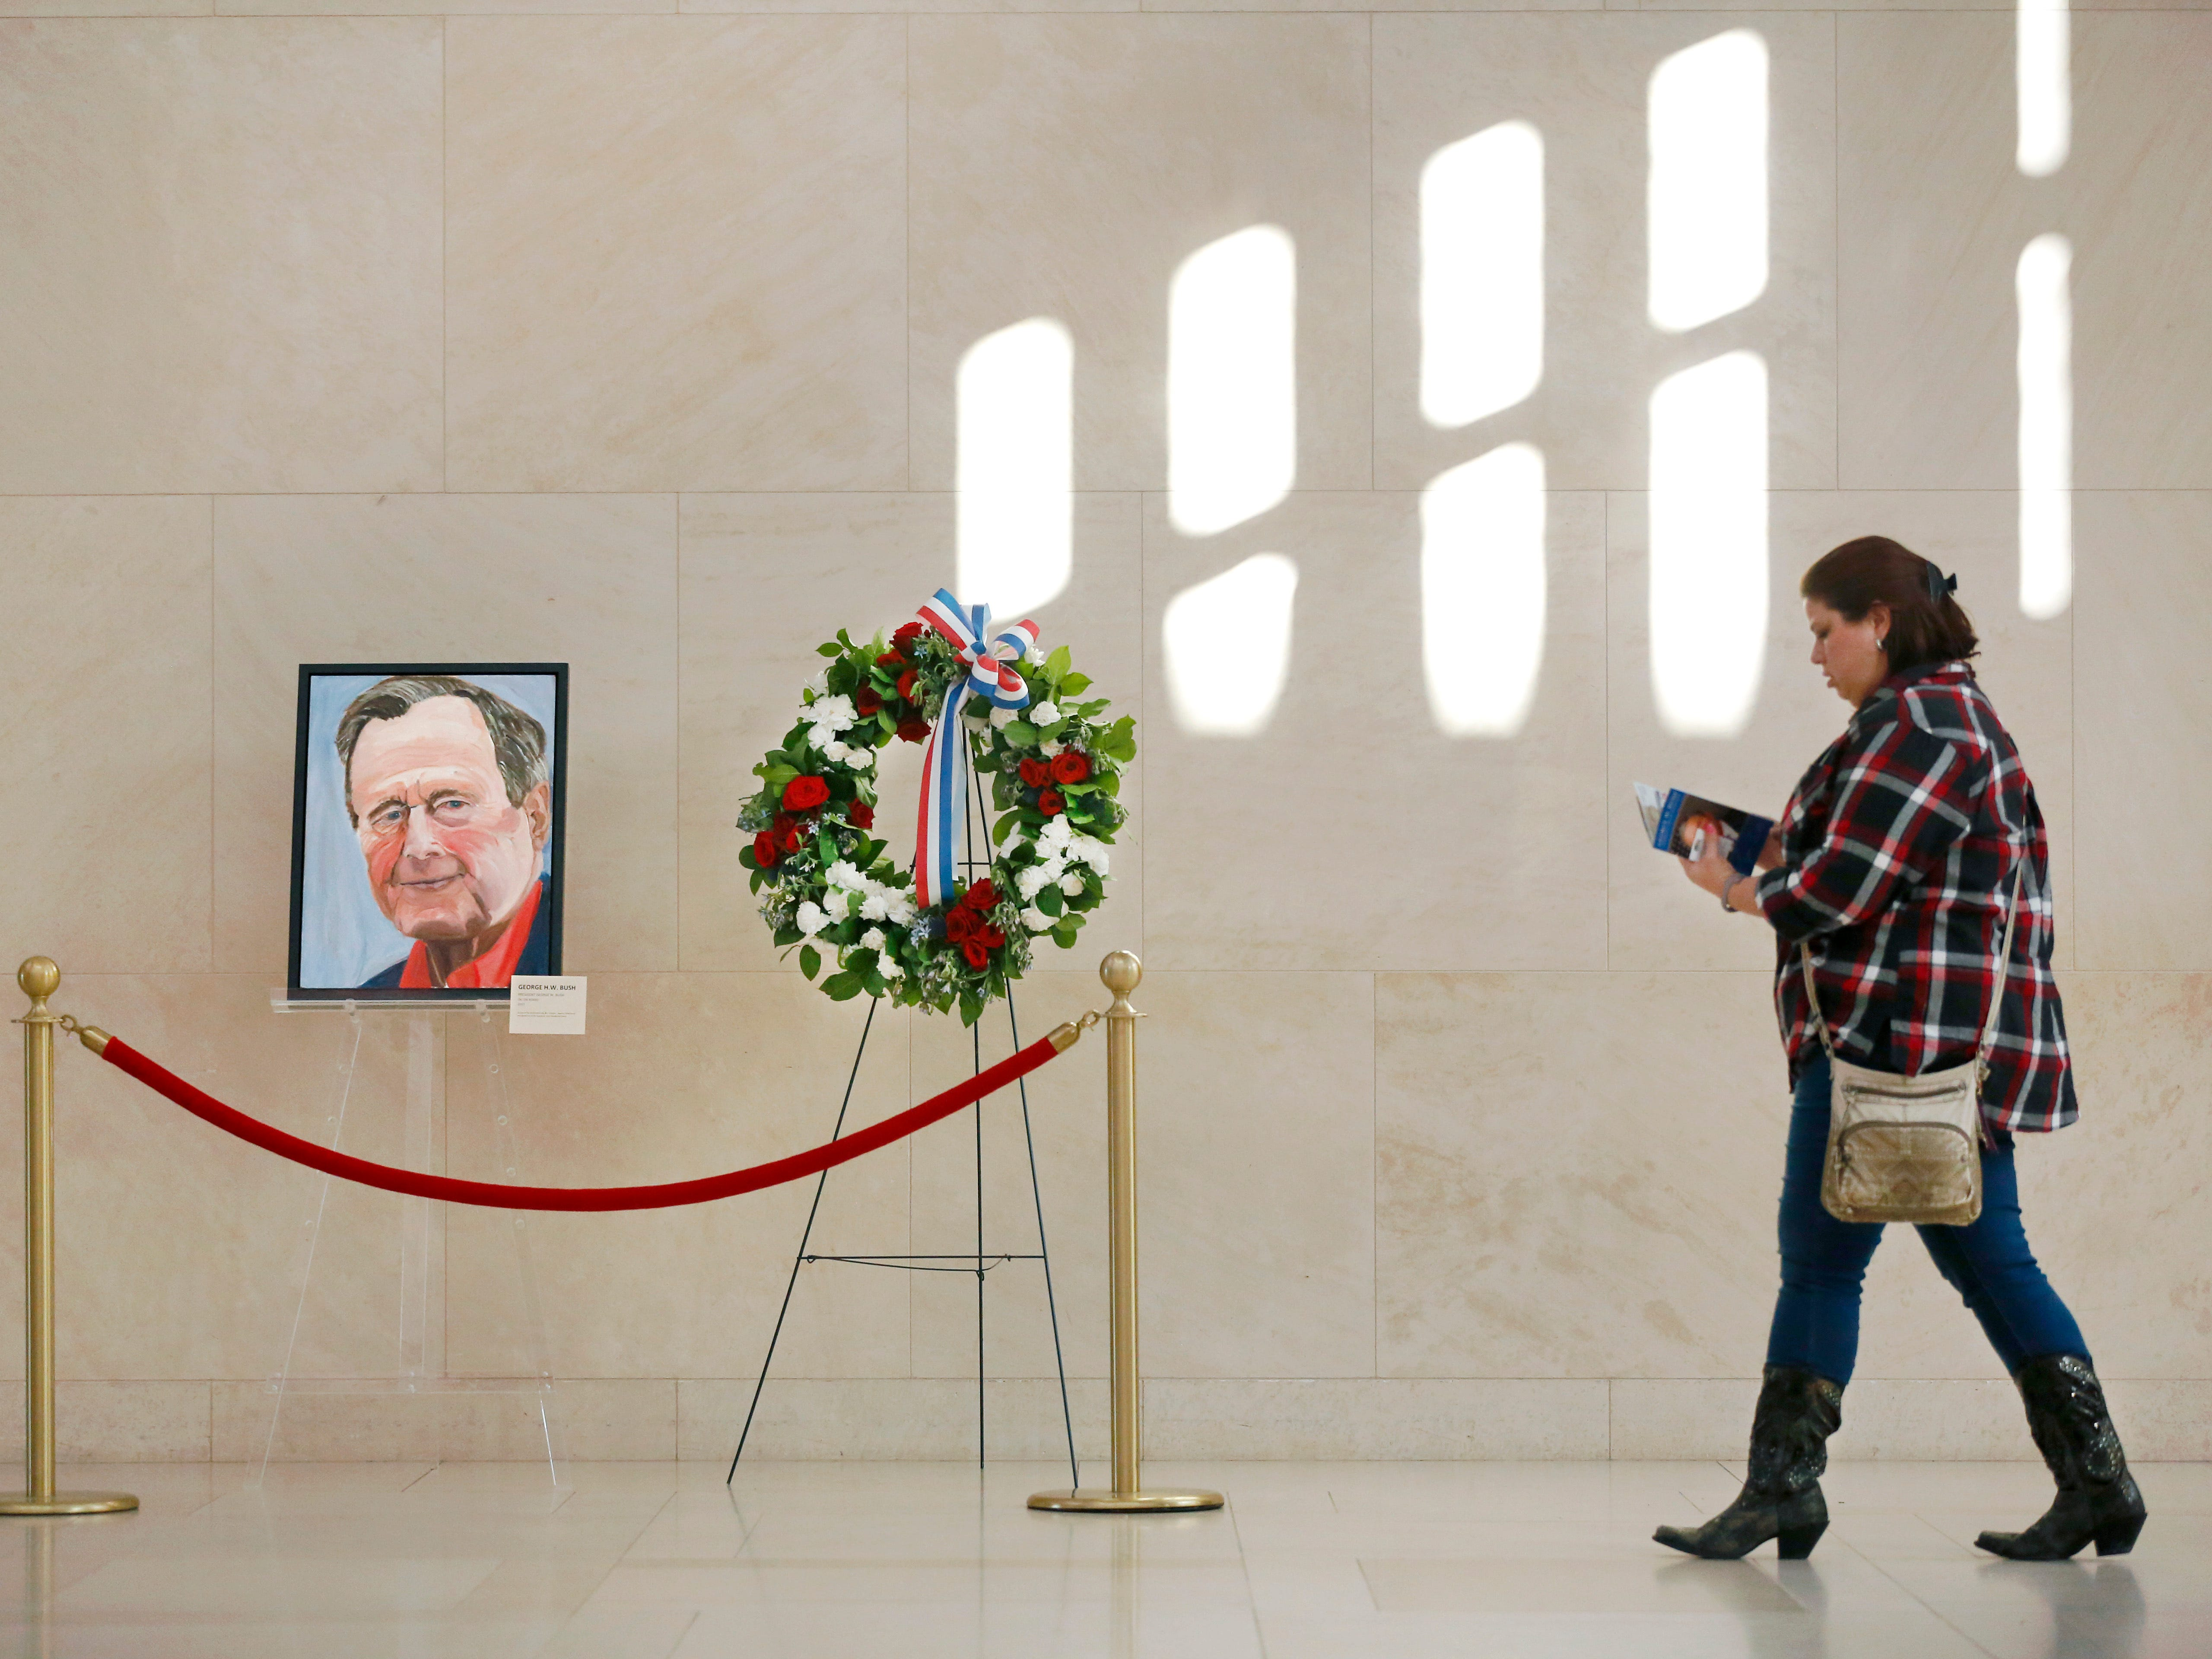 A guest to the George W. Bush Presidential Library and Museum in University Park, Texas passes by a painted portrait of Bush's father, the late 41st President George H.W. Bush -- painted by former Pres. George W. Bush -- and a memorial wreath, Sunday, Dec. 2, 2018.